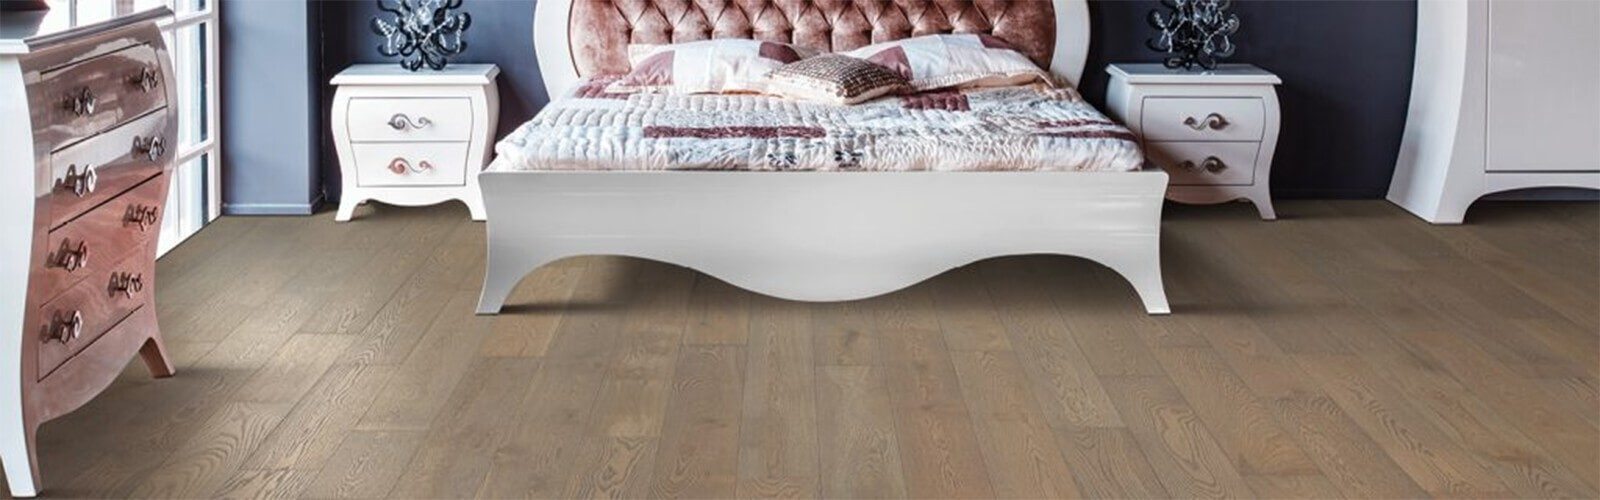 Bedroom flooring | BMG Flooring & Tile Center